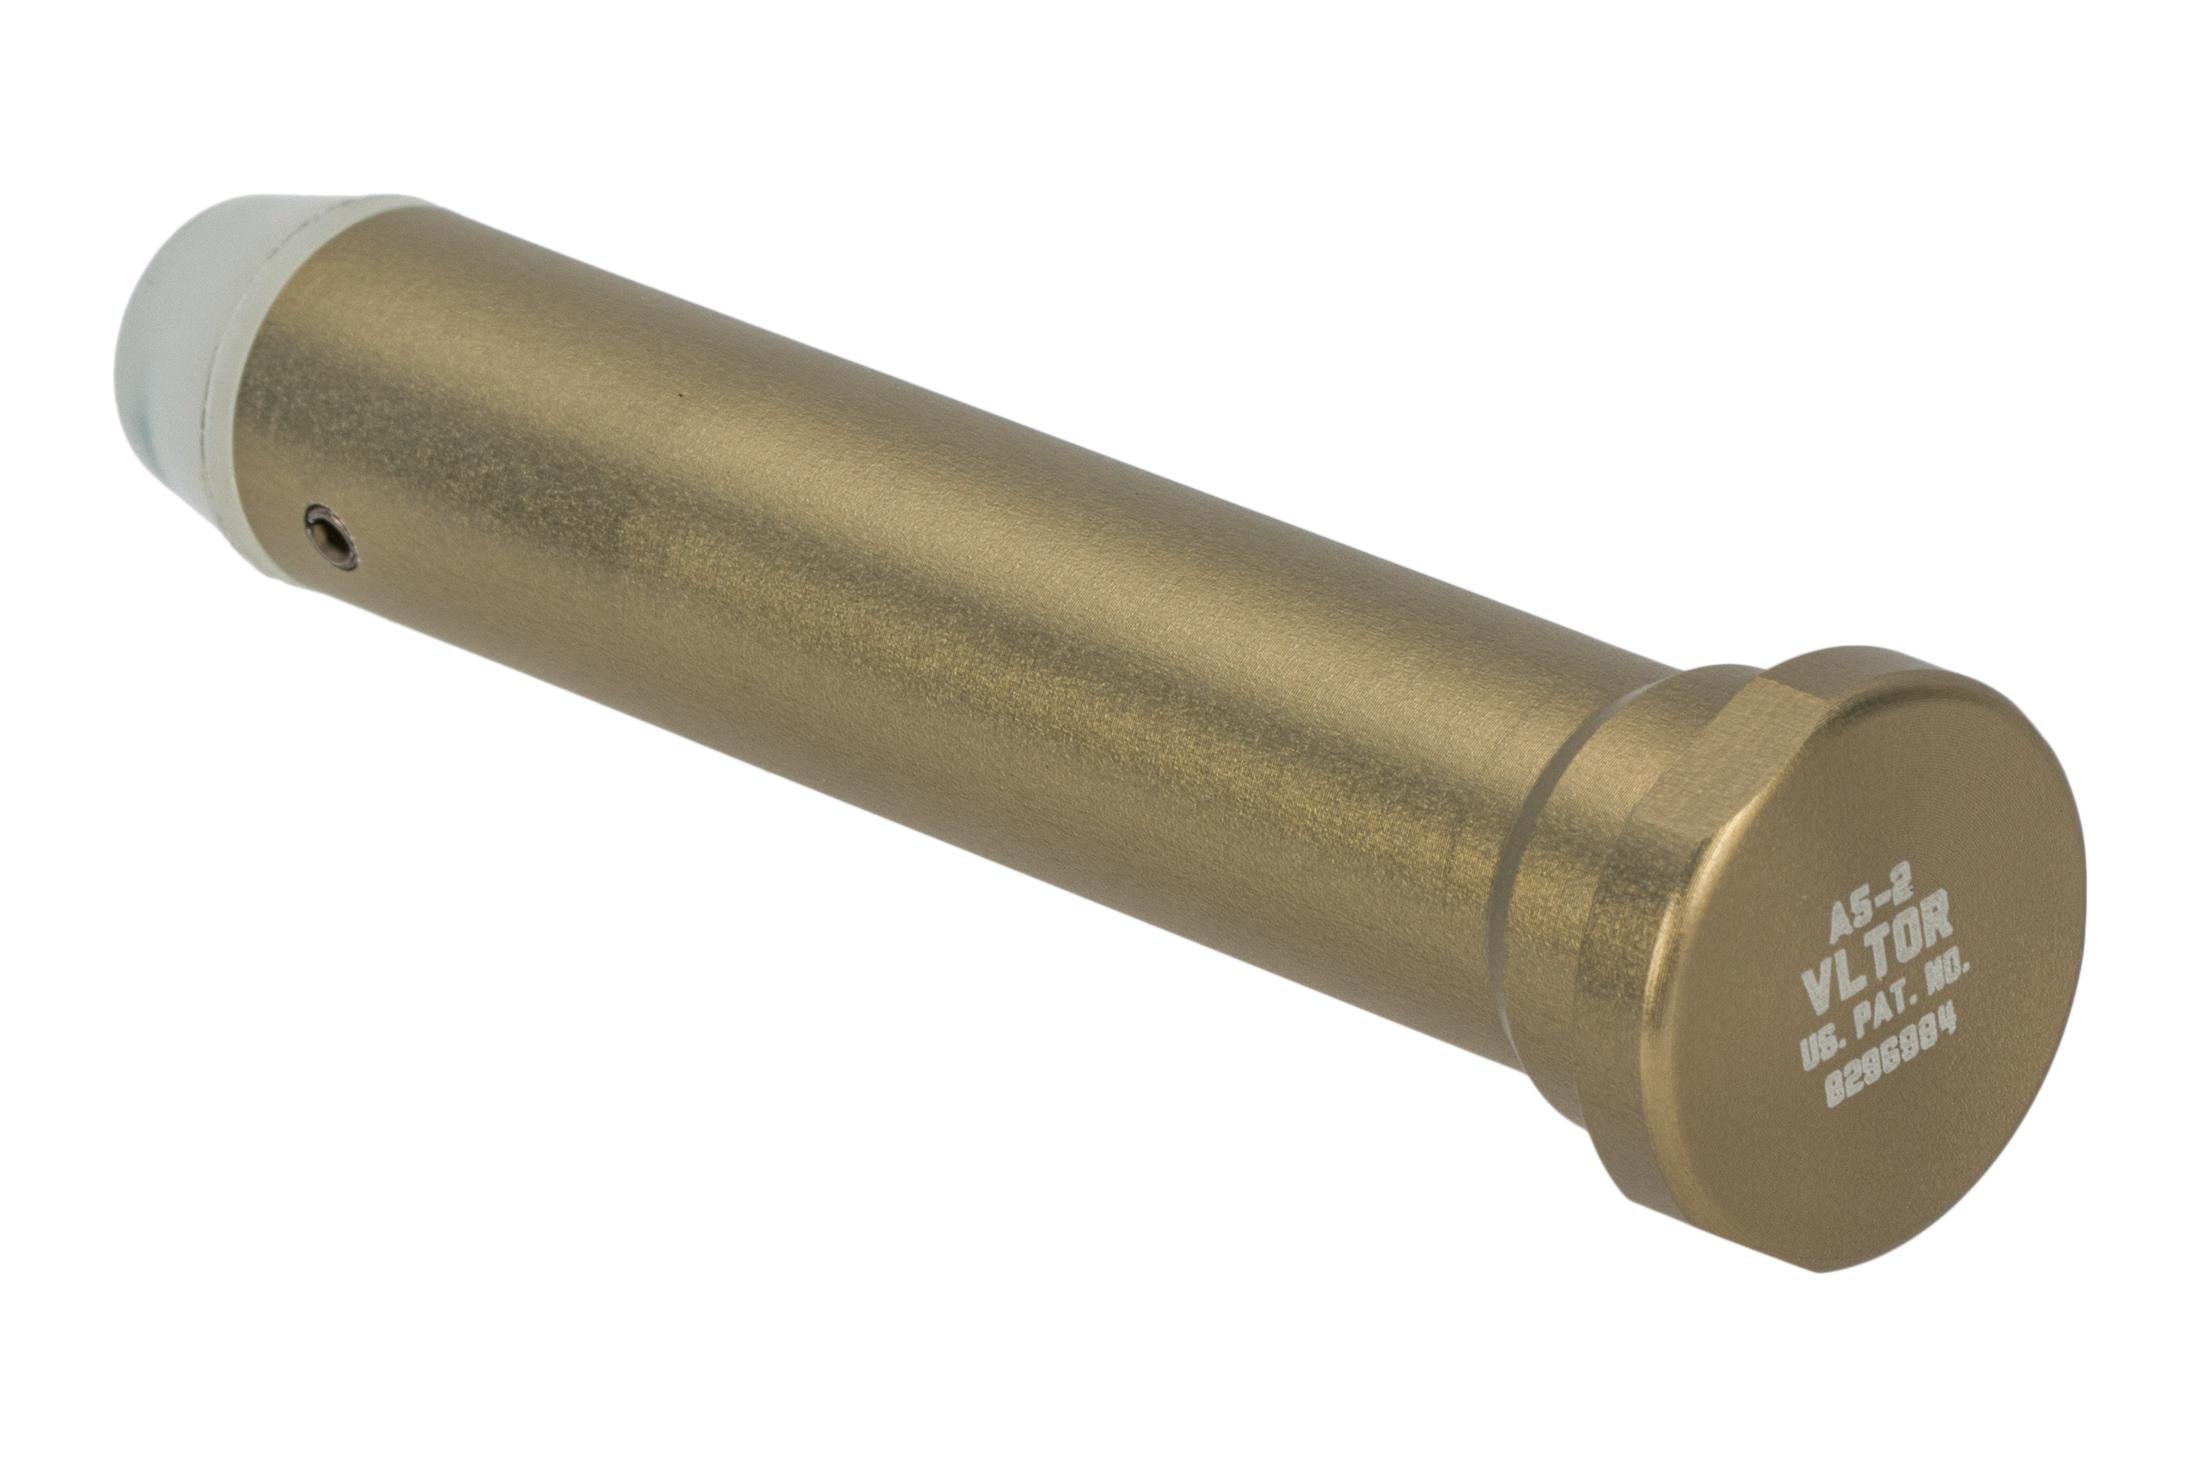 The Vltor A5 5.3 ounce Buffer Weight is designed for rifle length gas systems with carbine receiver extensions